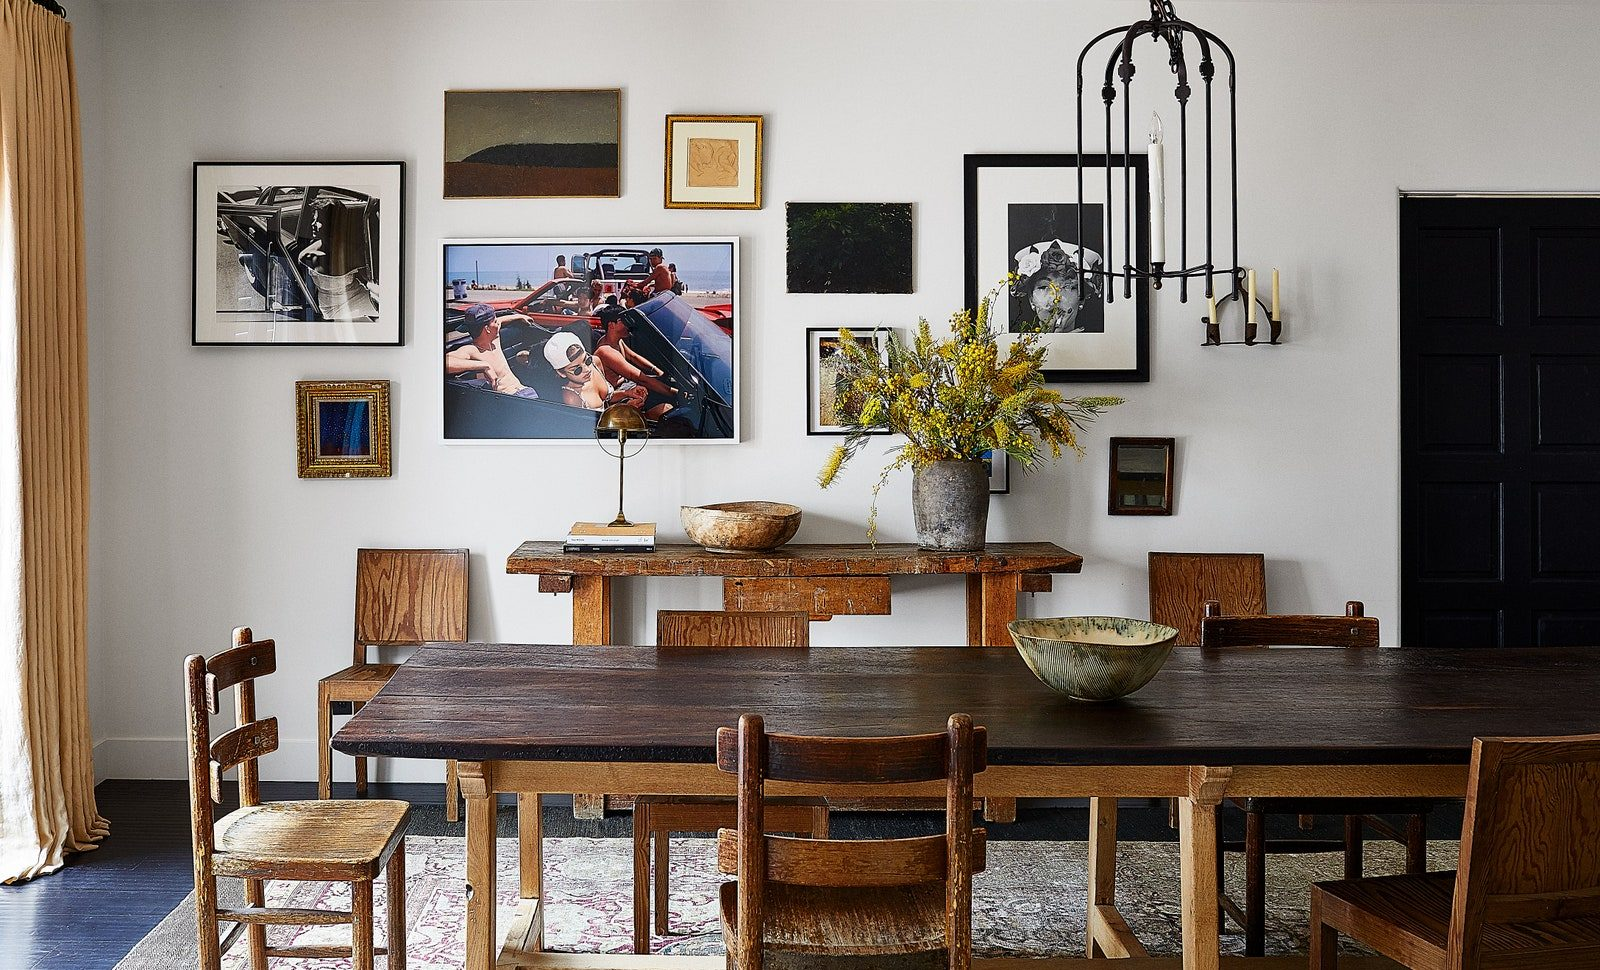 Kendall Jenner Dining Room